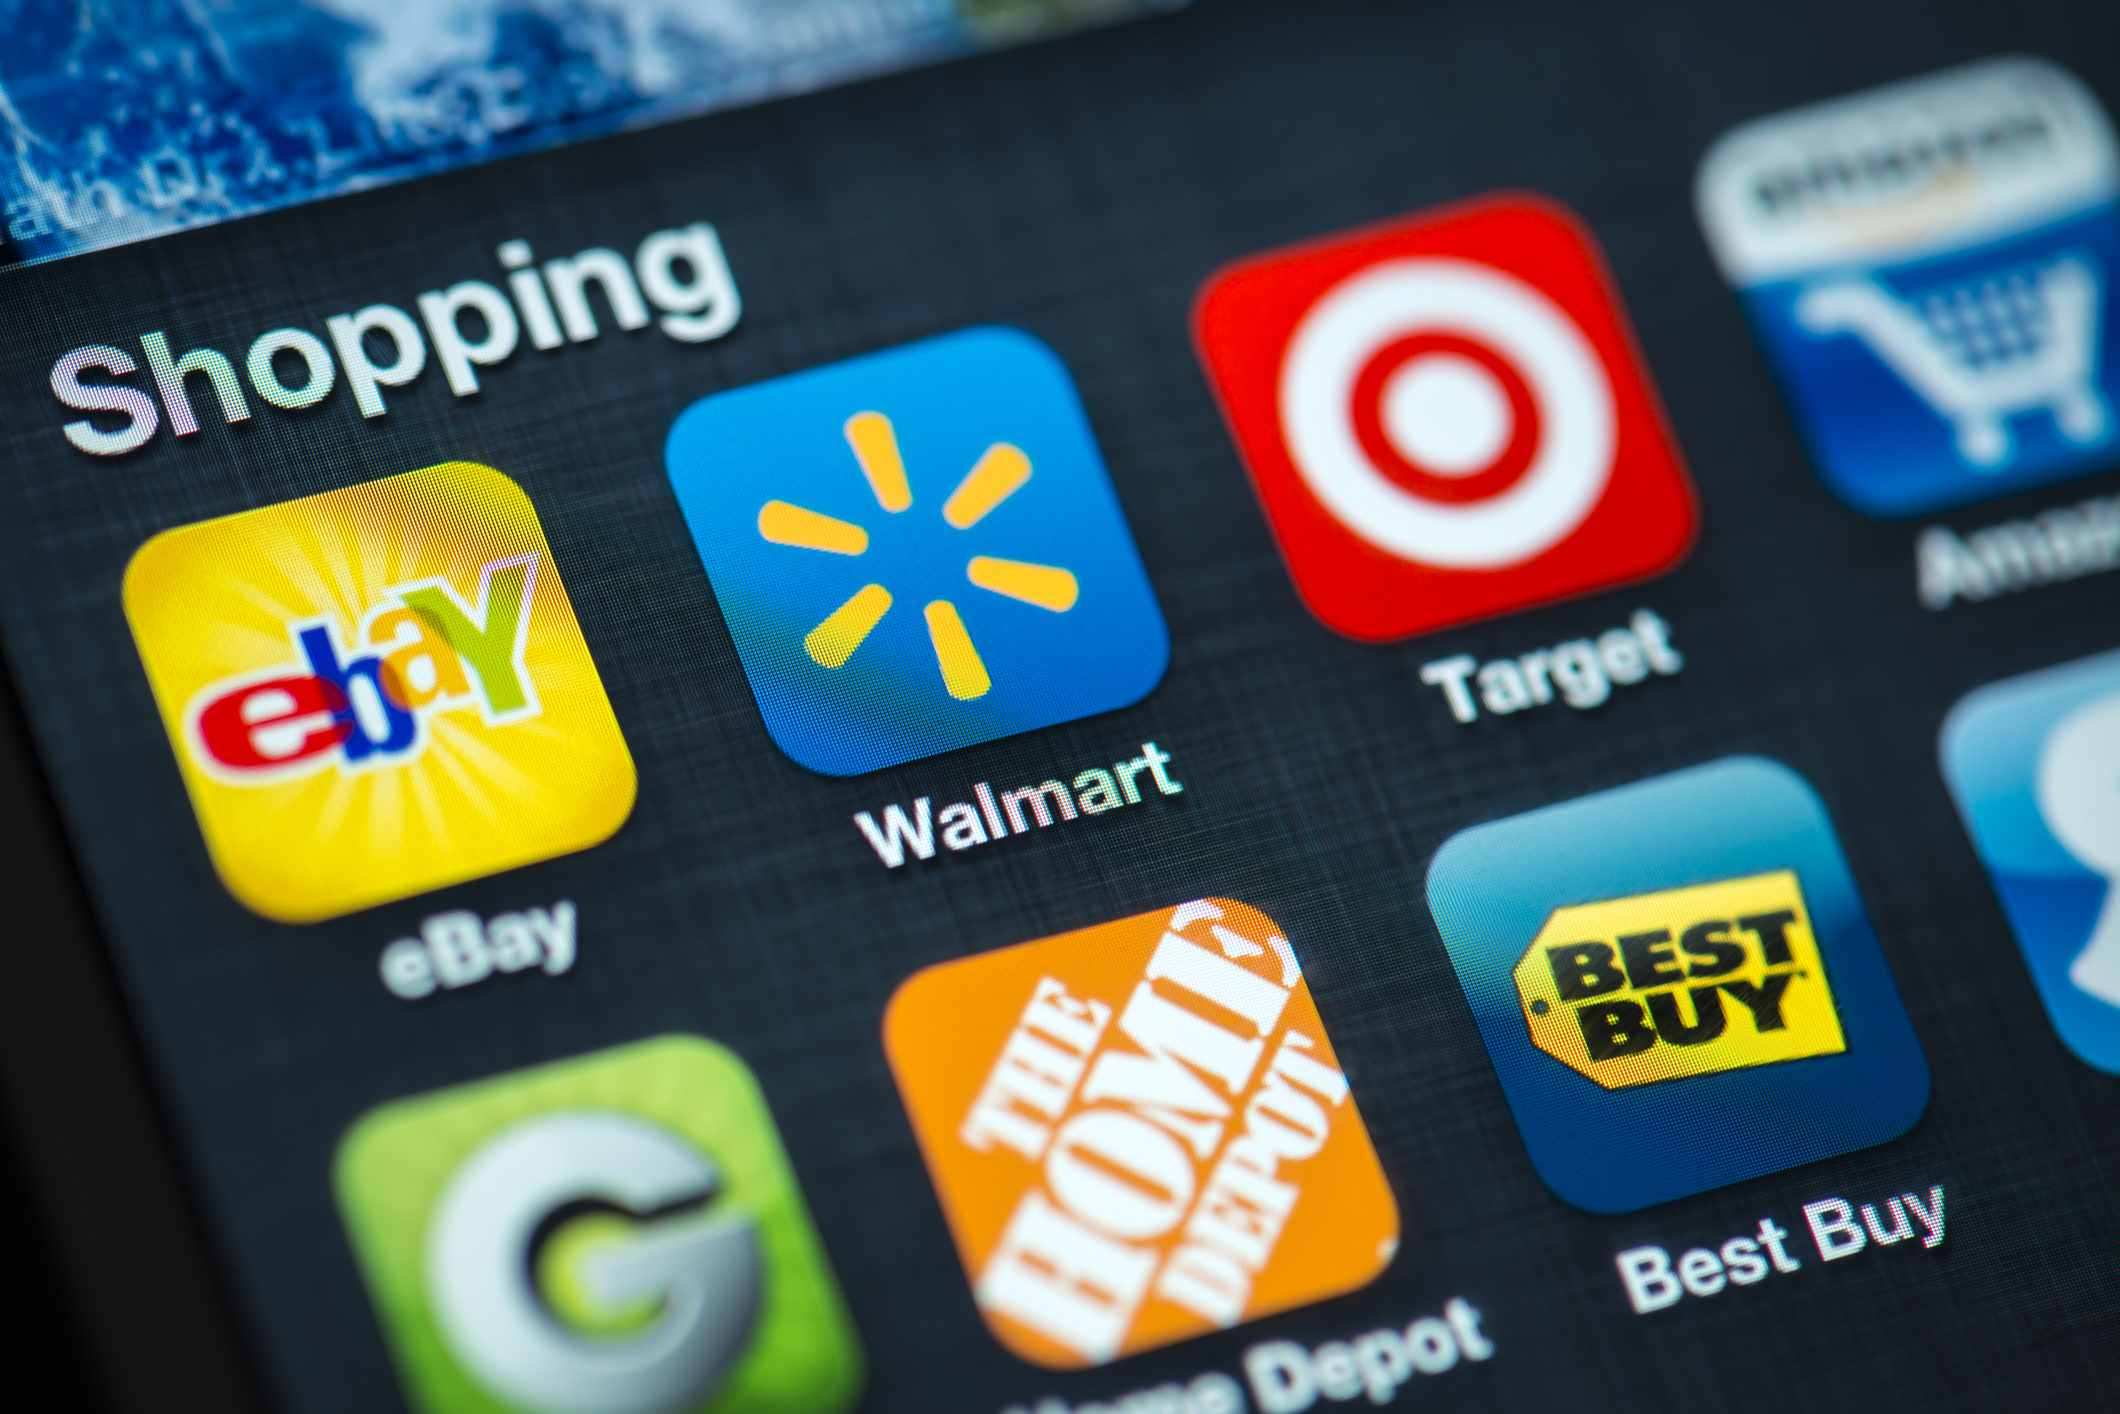 An image of a smartphone showing the Walmart app on its screen.